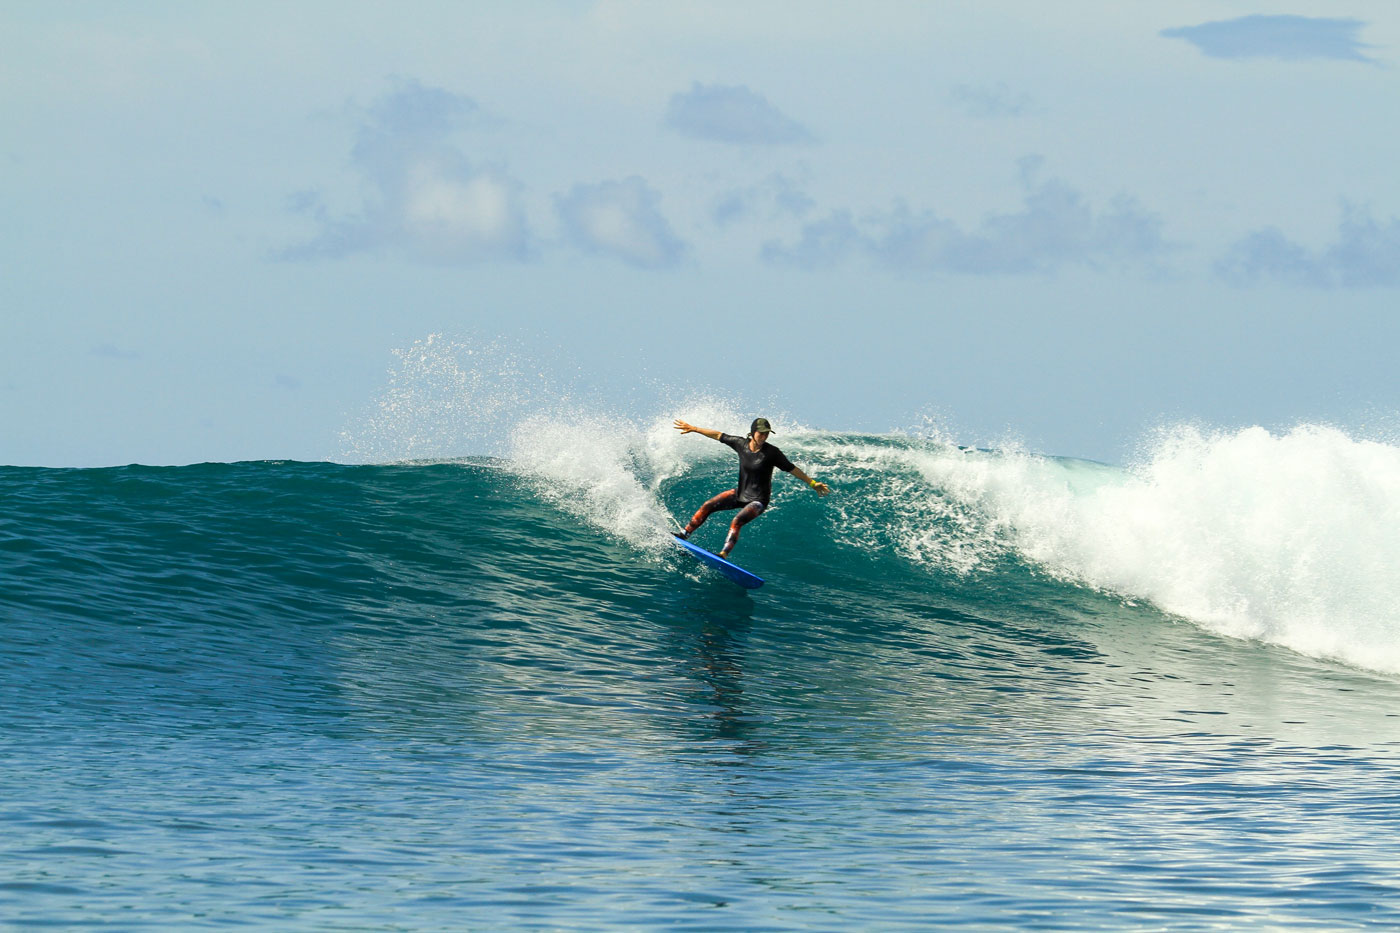 Around the way, there's Tantras which was also a fun, easy wave but a right.